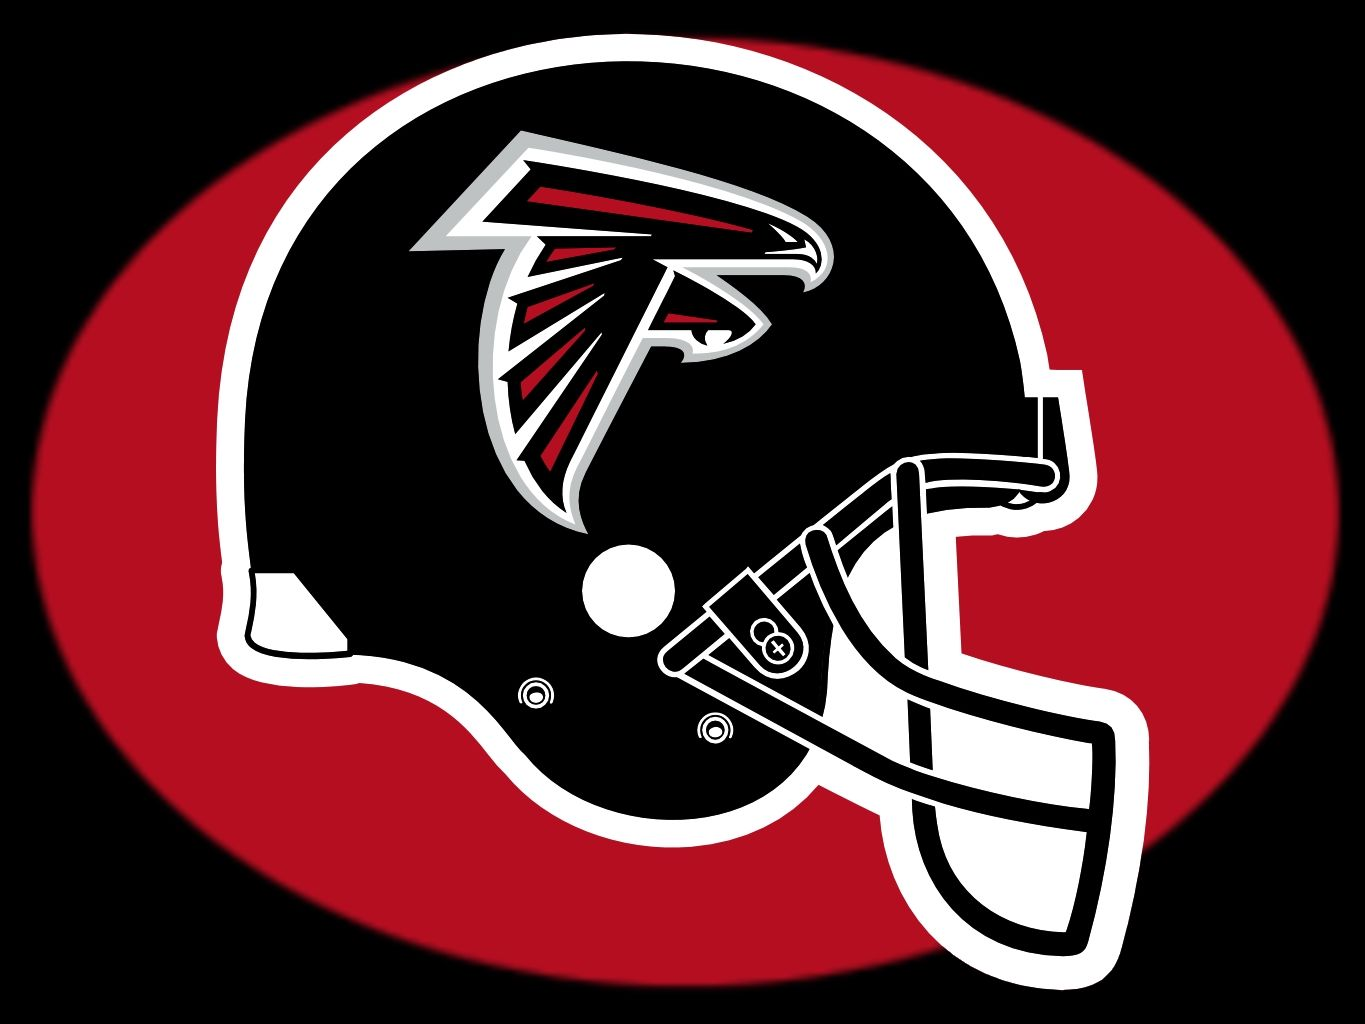 Atlanta Falcons Established In 1966 In The Old Nfl This Team Has Had A Lot Of Heart And Perseverance Through Ad Atlanta Falcons Memes Falcons Atlanta Falcons